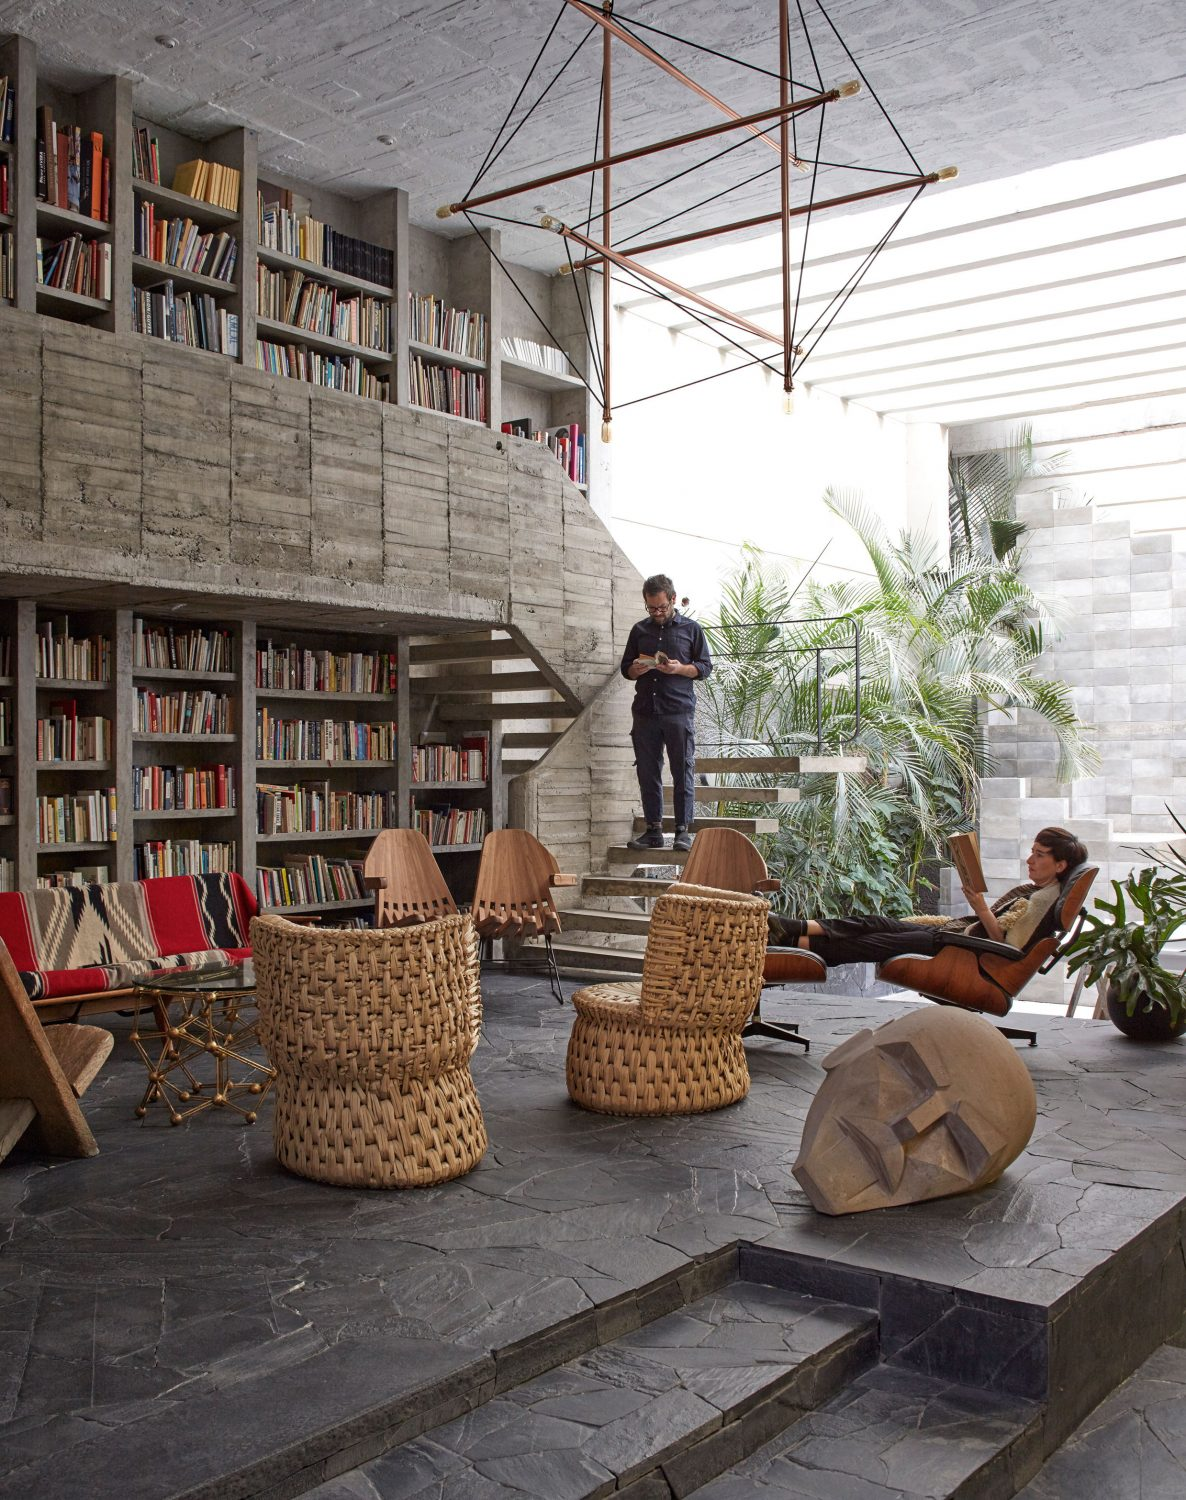 The Reyes House by Pedro Reyes and Carla Fernandez